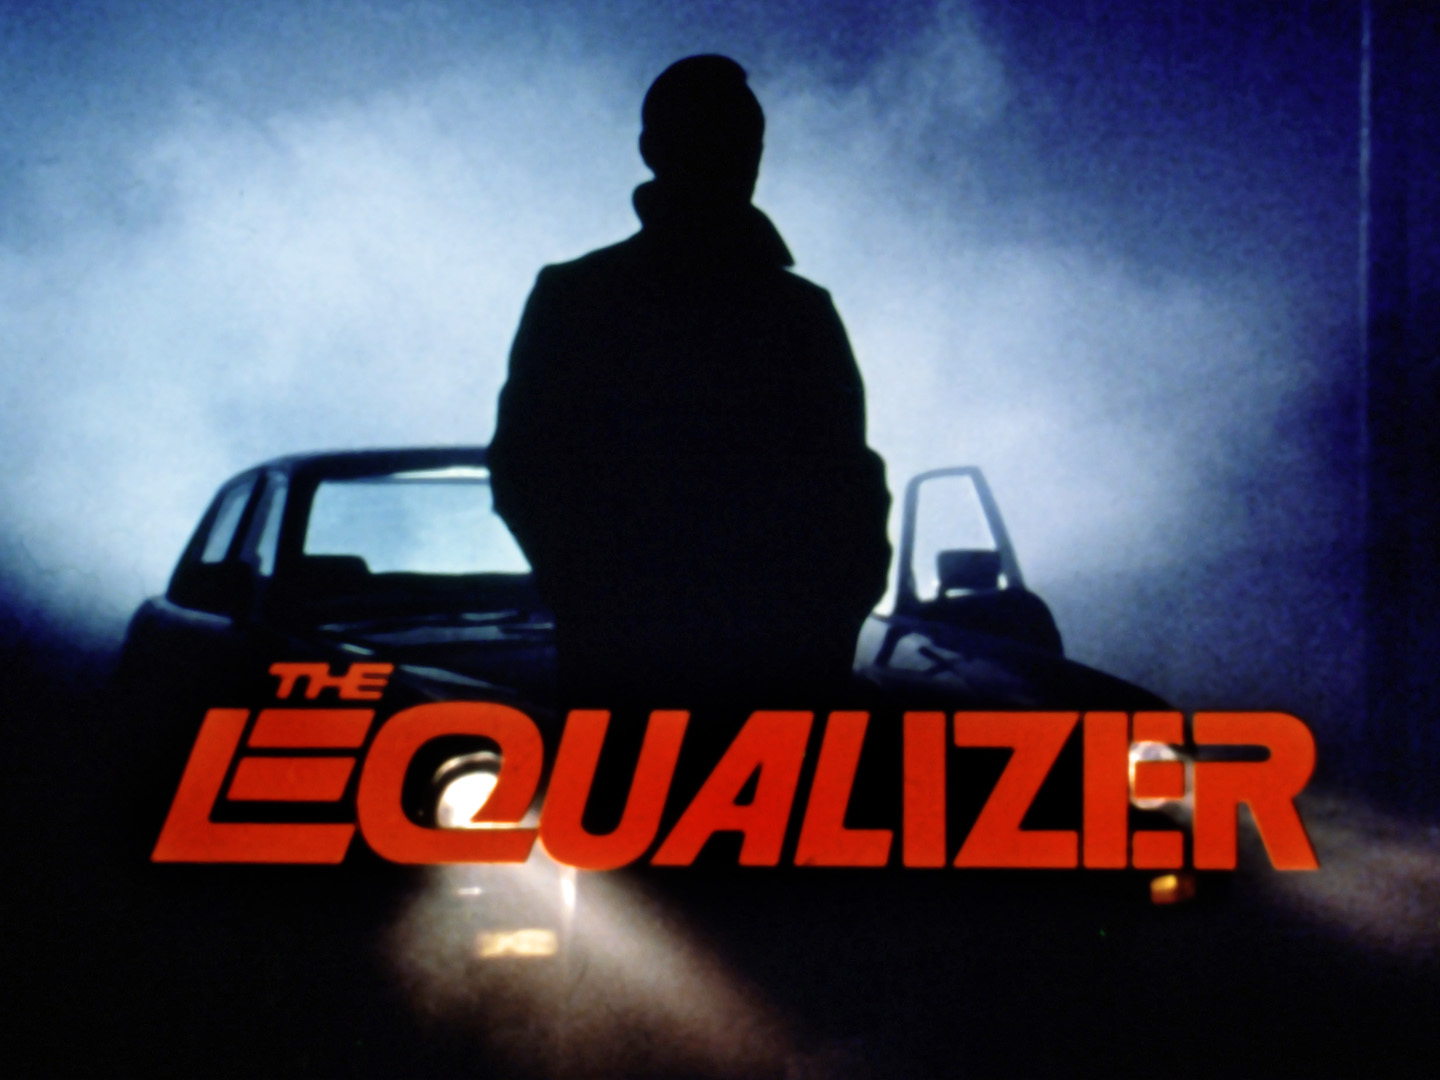 Eminem, Sia, The Equalizer, Denzel Washington